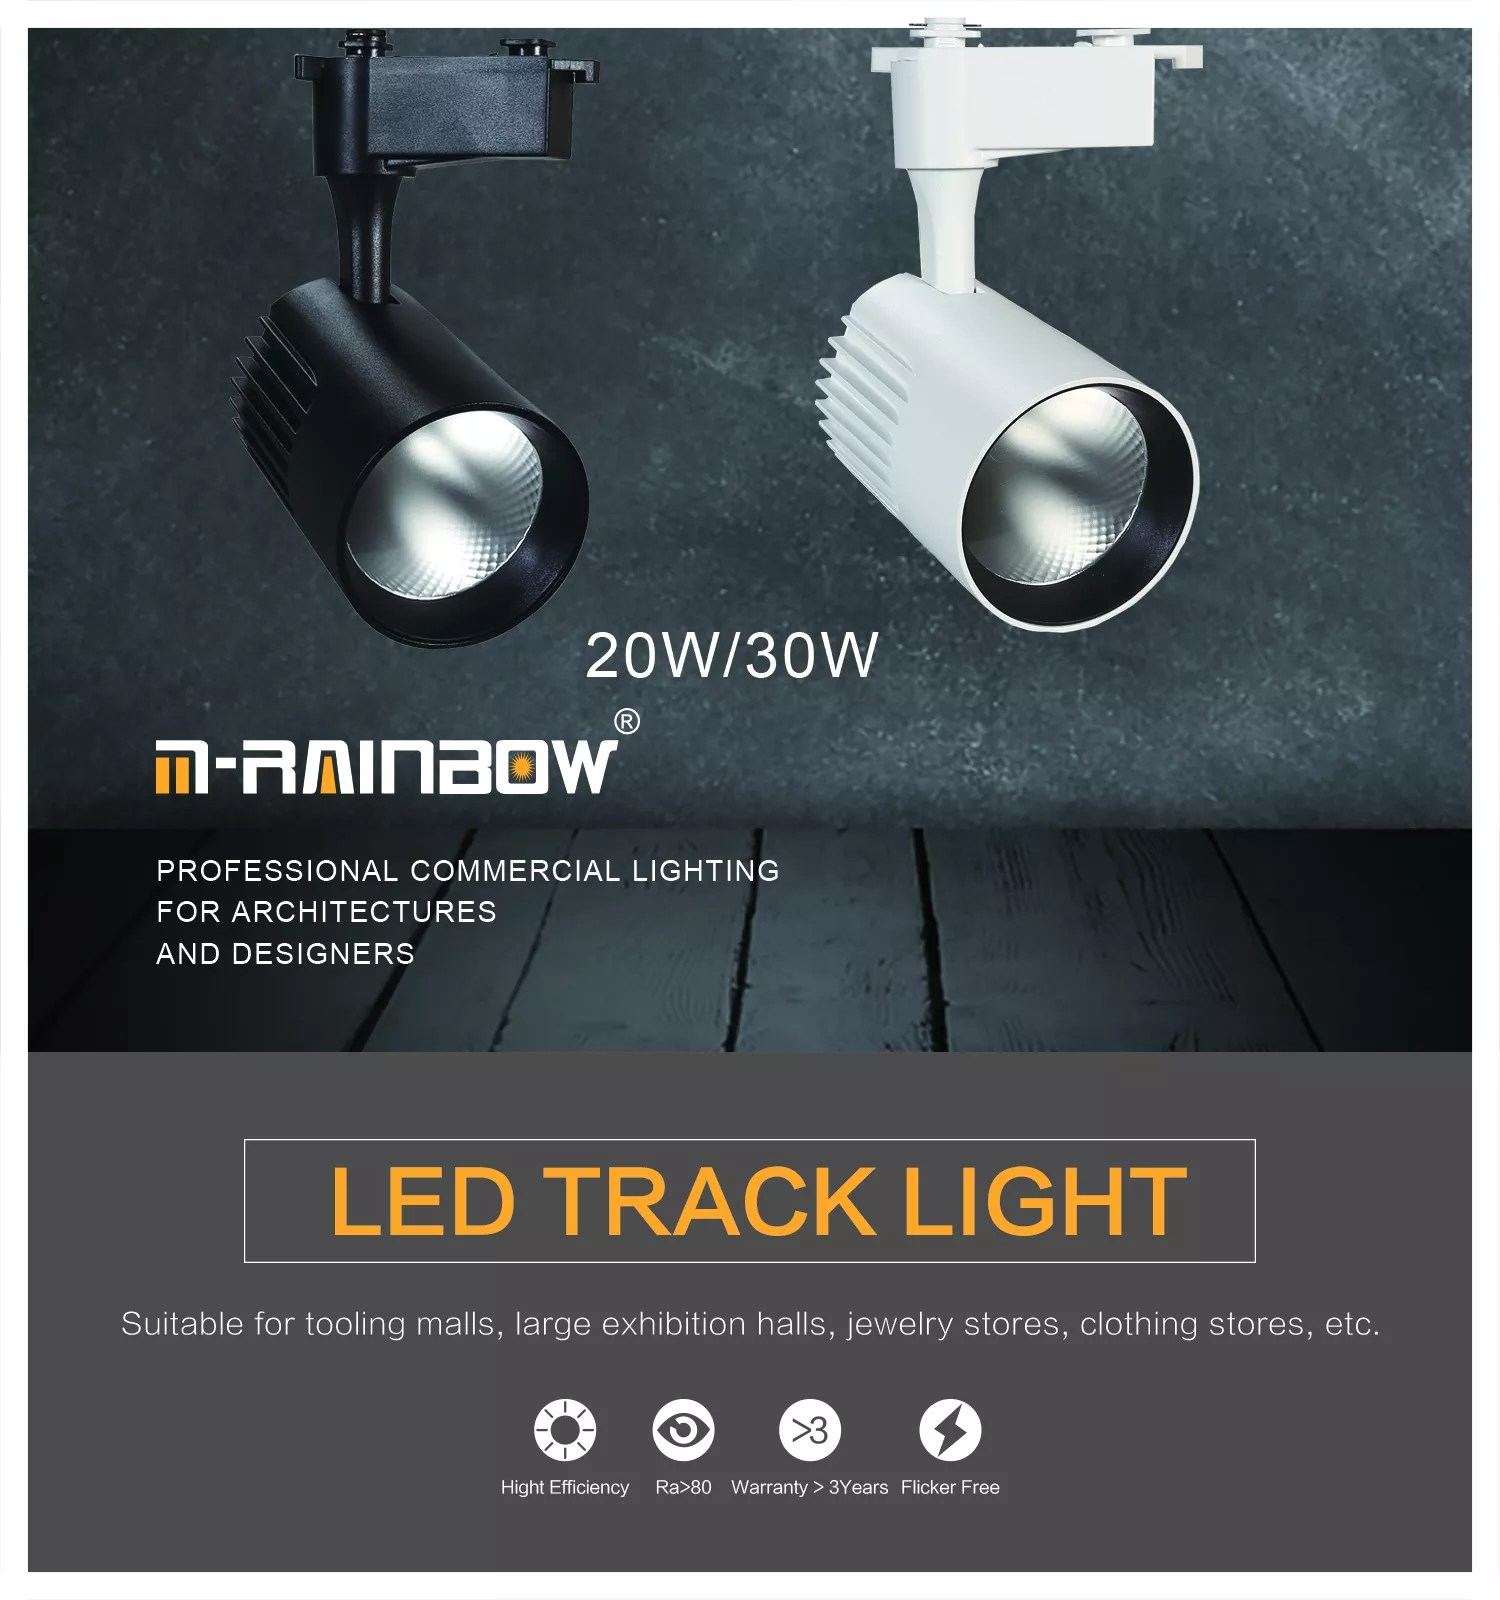 universal updating 110 volt high project source global led spot line 20w luminaire window low voltage track lighting buy low voltage track